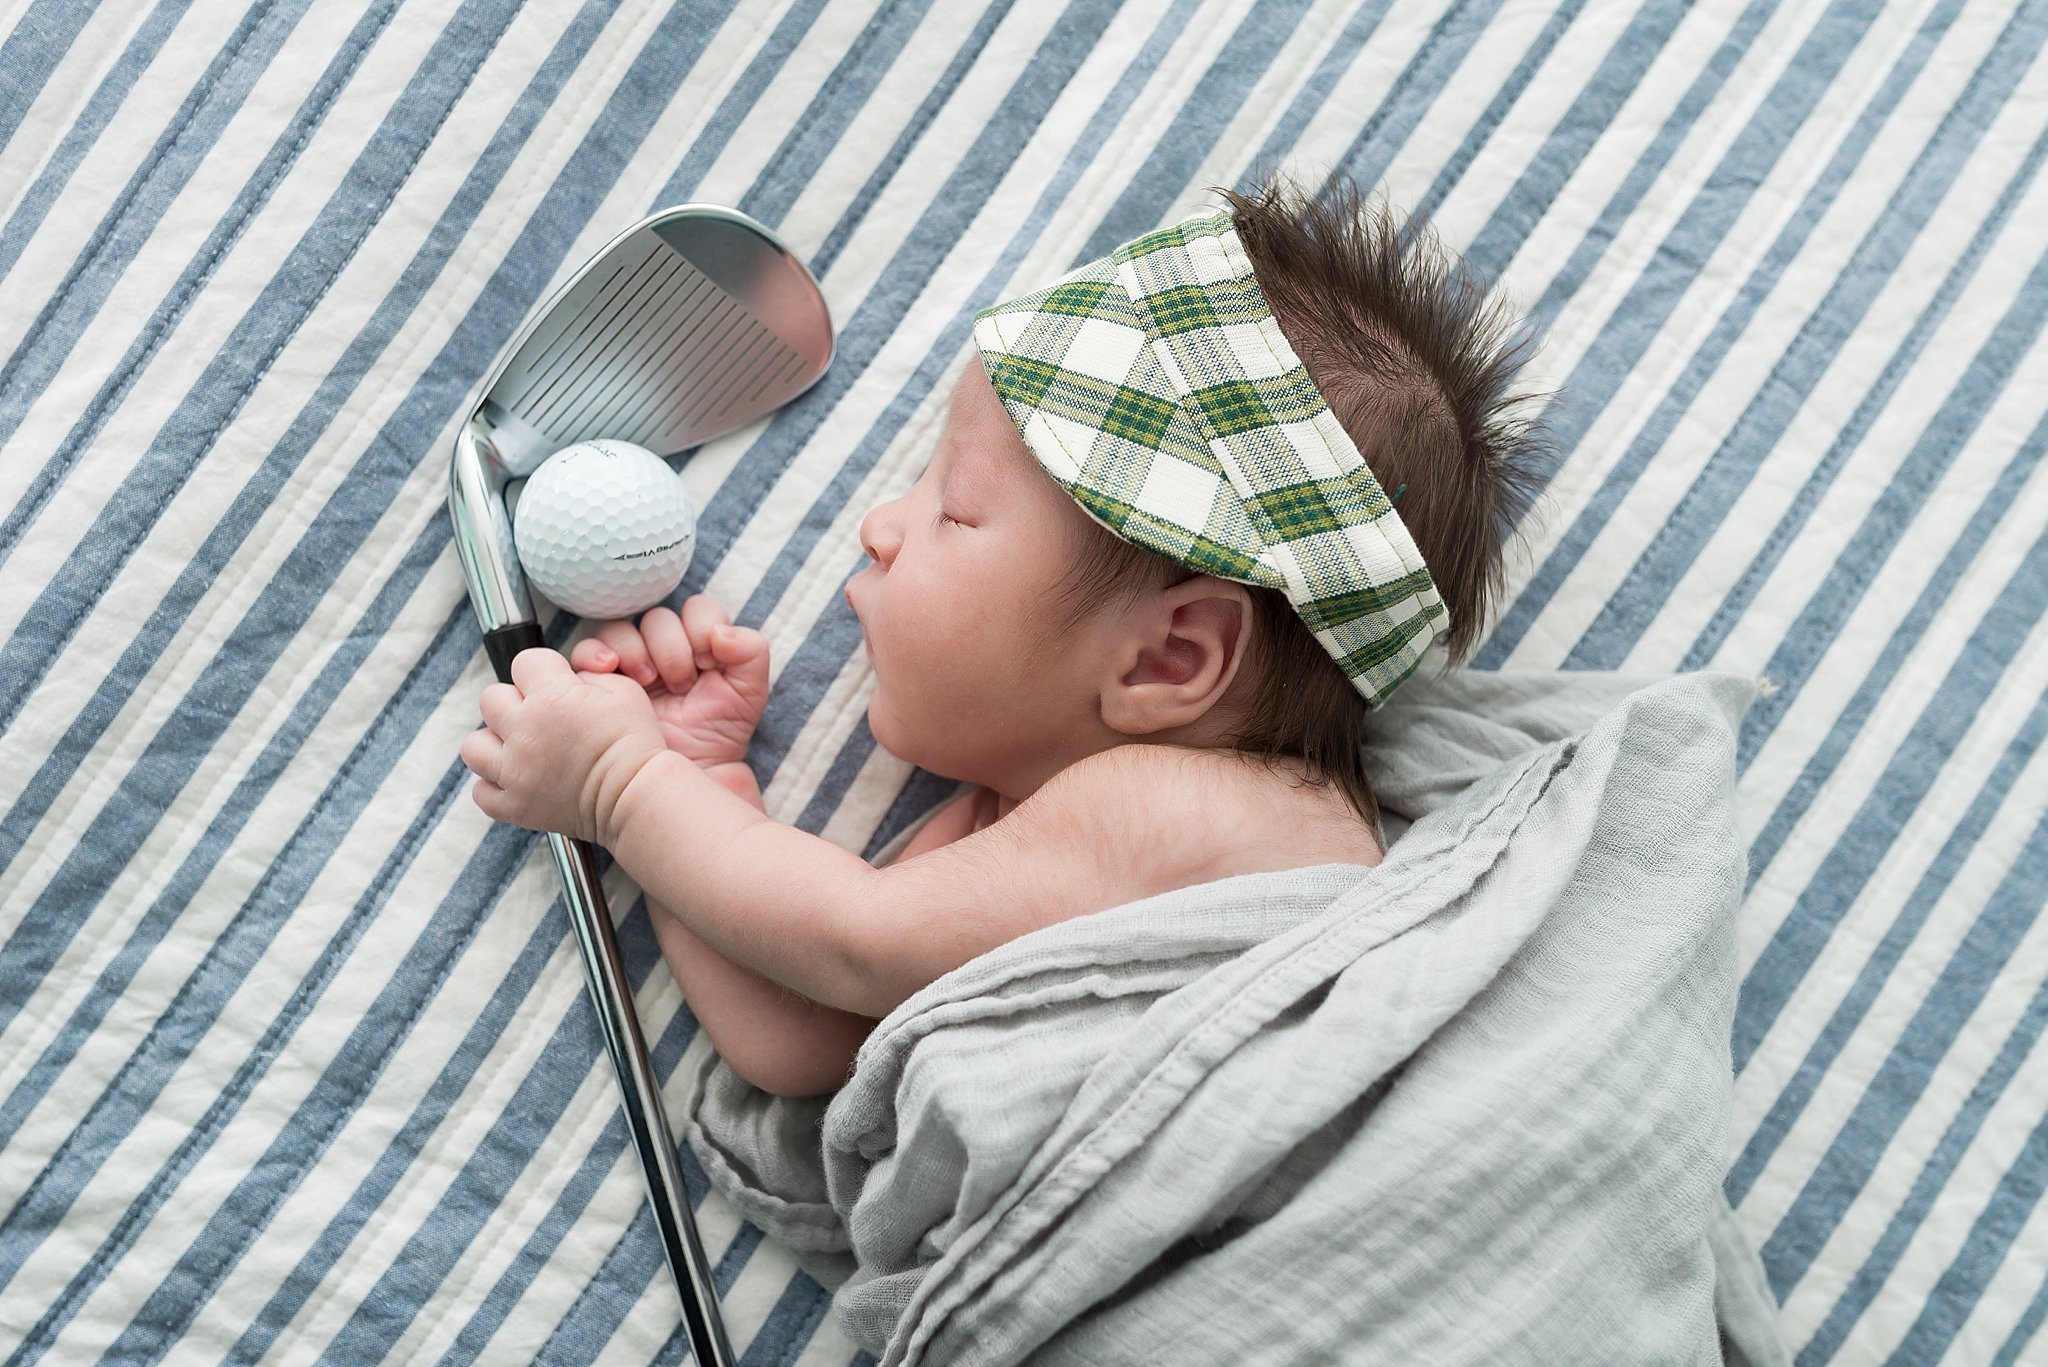 He's already dreaming of his first hole in one!